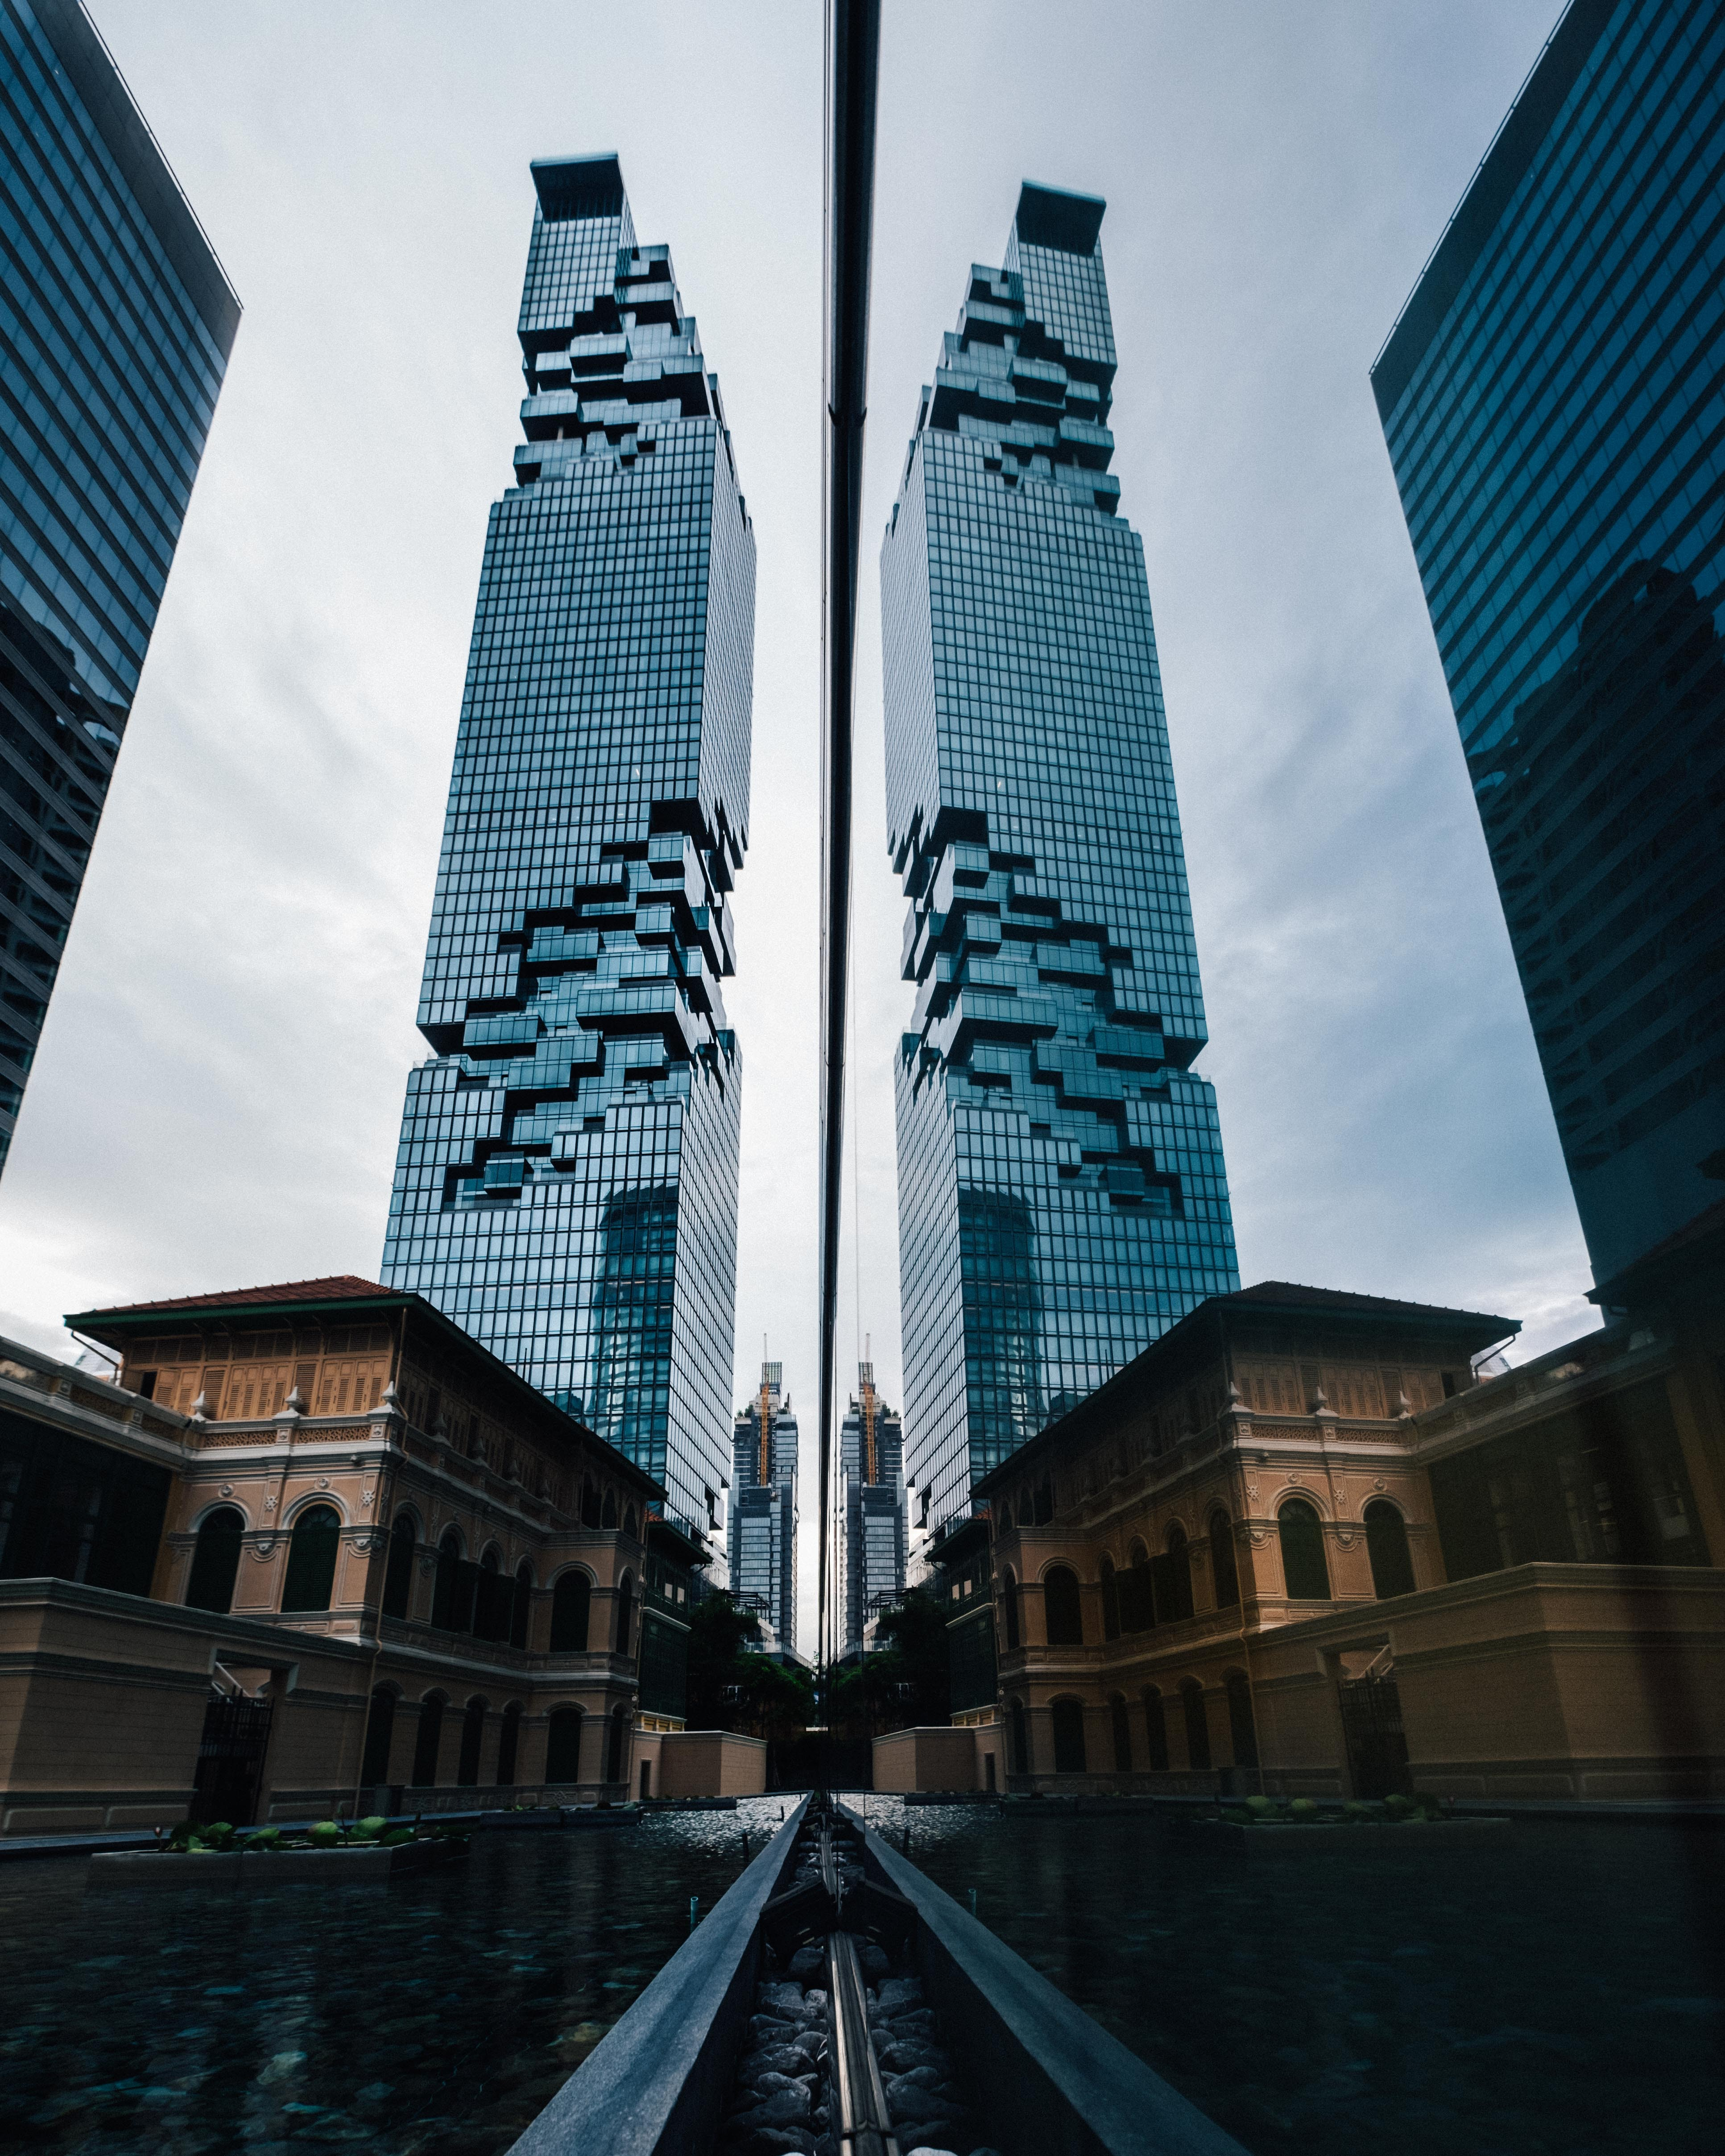 low angle photography of curtain wall building reflecting on mirror